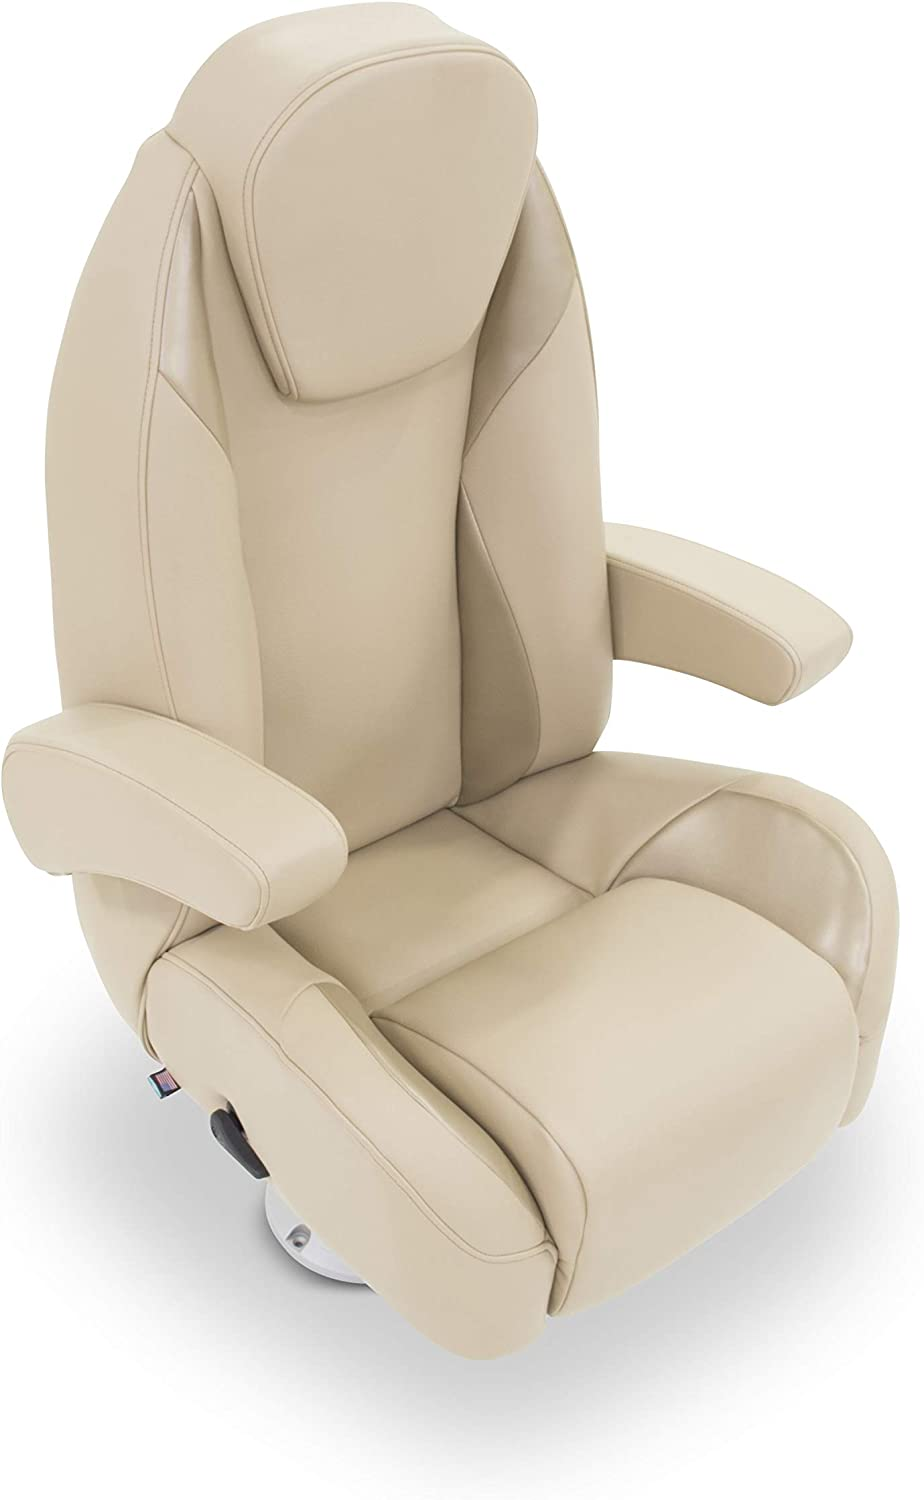 B076PQFMT6 Taylor Made 433097 Platinum Series Furniture Dove Grey High Back Recliner Pontoon Helm Seat with Flip-Up Bolster 710lJGUnq-L.SL1500_